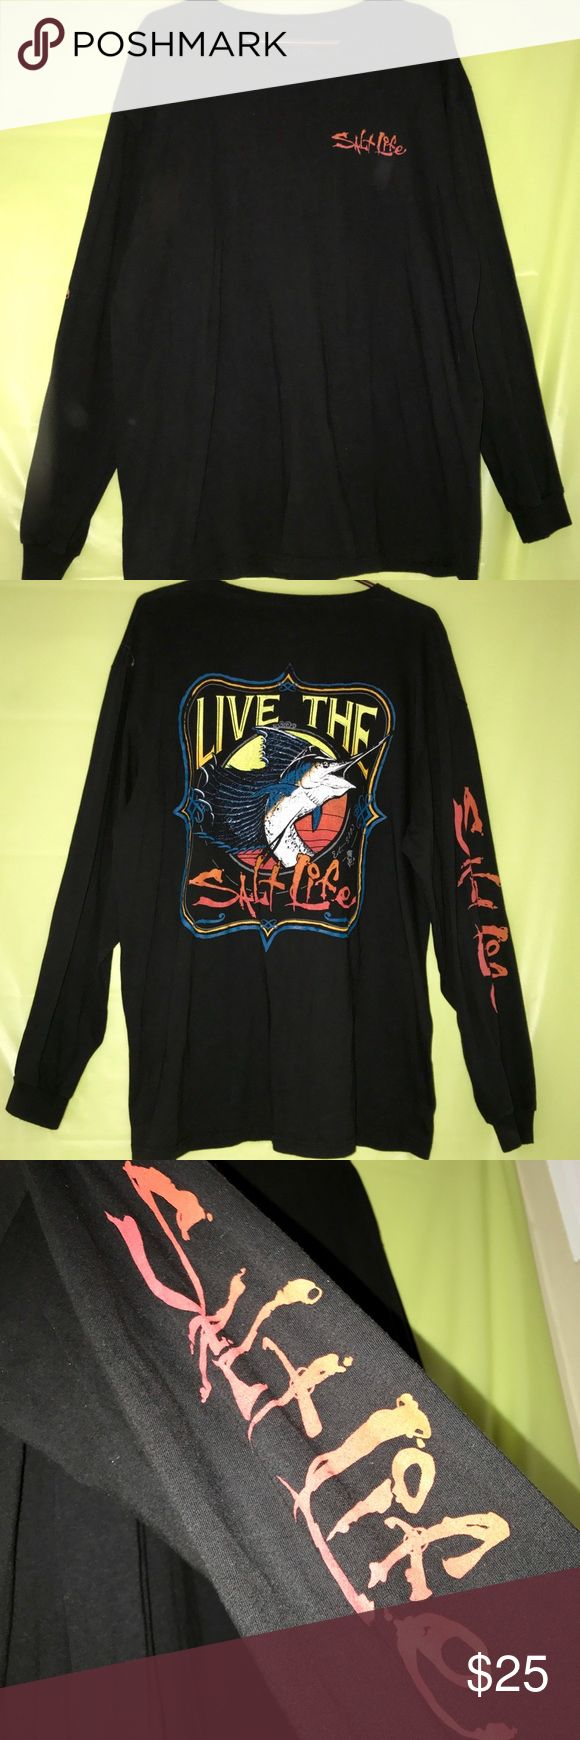 Salt Life long sleeve shirt Only worn twice, pairs great with jeans and boots, and super comfy! Salt Life Shirts Tees - Long Sleeve